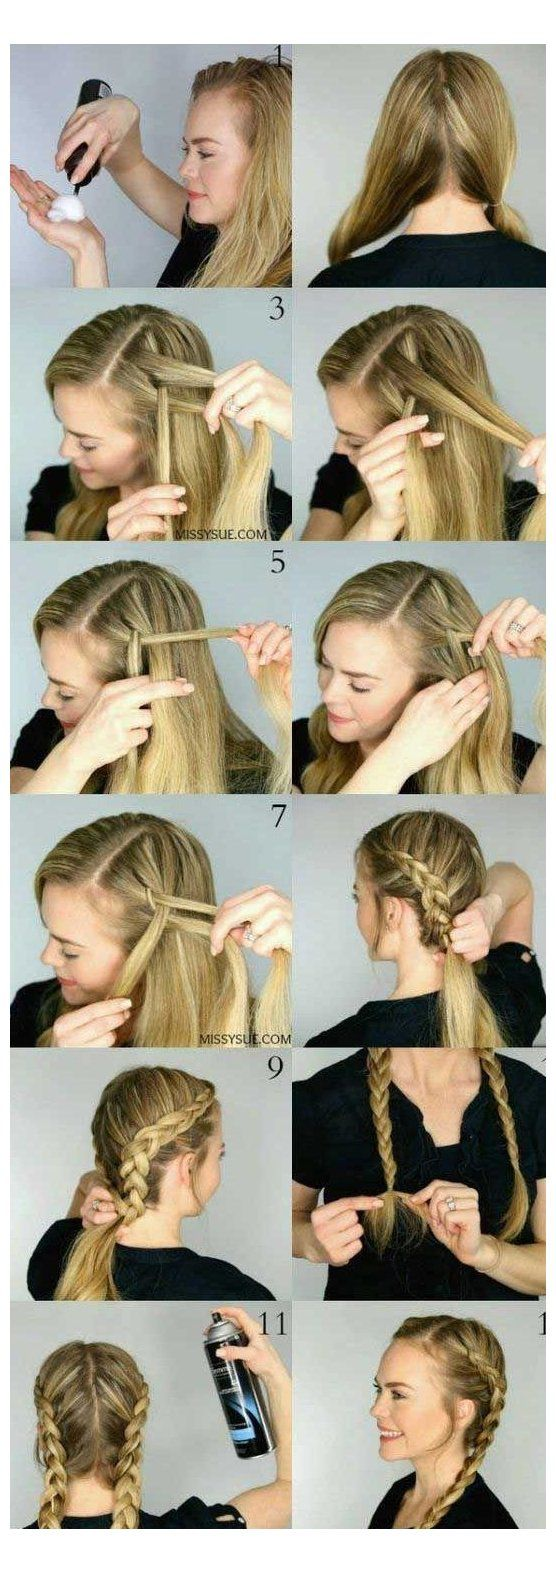 Long Hair Dont Care A Wonderful Long Hair Style For Wedding And Prom Steal Her 698522 Prom Hairstyle In 2020 Braided Hairstyles Hair Styles Braids For Long Hair